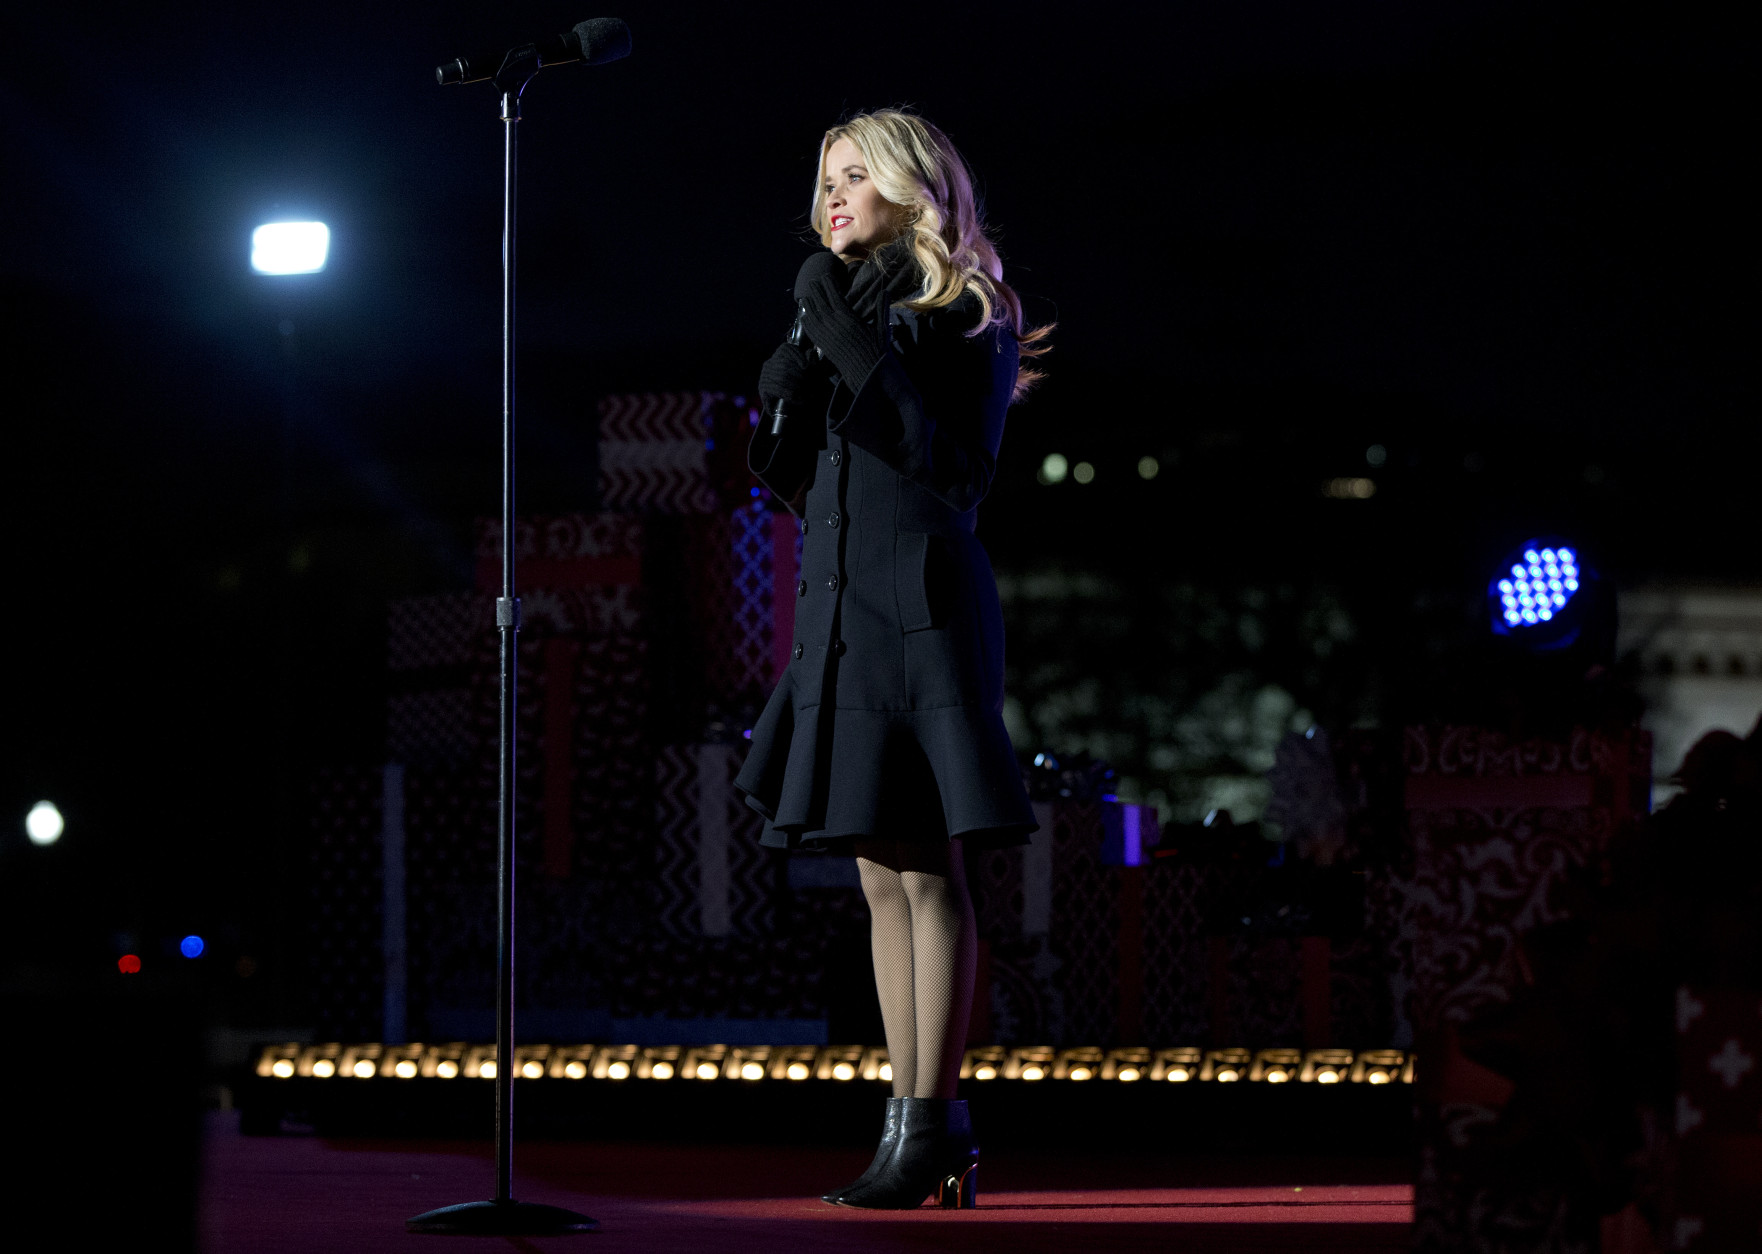 Reese Witherspoon speaks on stage during the National Christmas Tree Lighting ceremony at the Ellipse in Washington, Thursday, Dec. 3, 2015. (AP Photo/Carolyn Kaster)